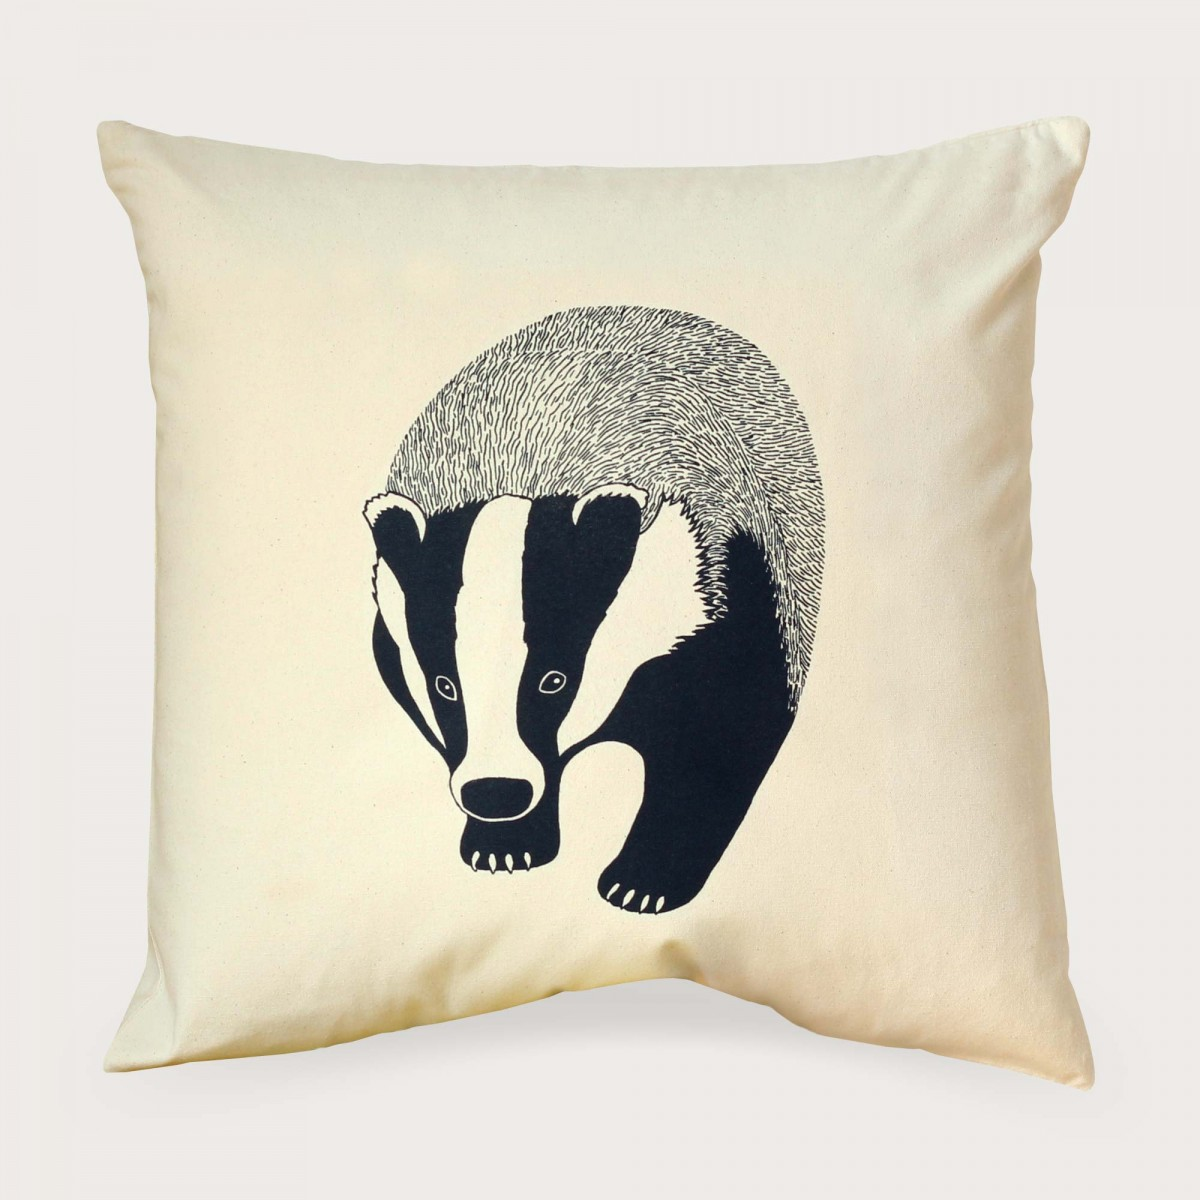 Badger Natural Cotton Canvas Square Cushion Cover